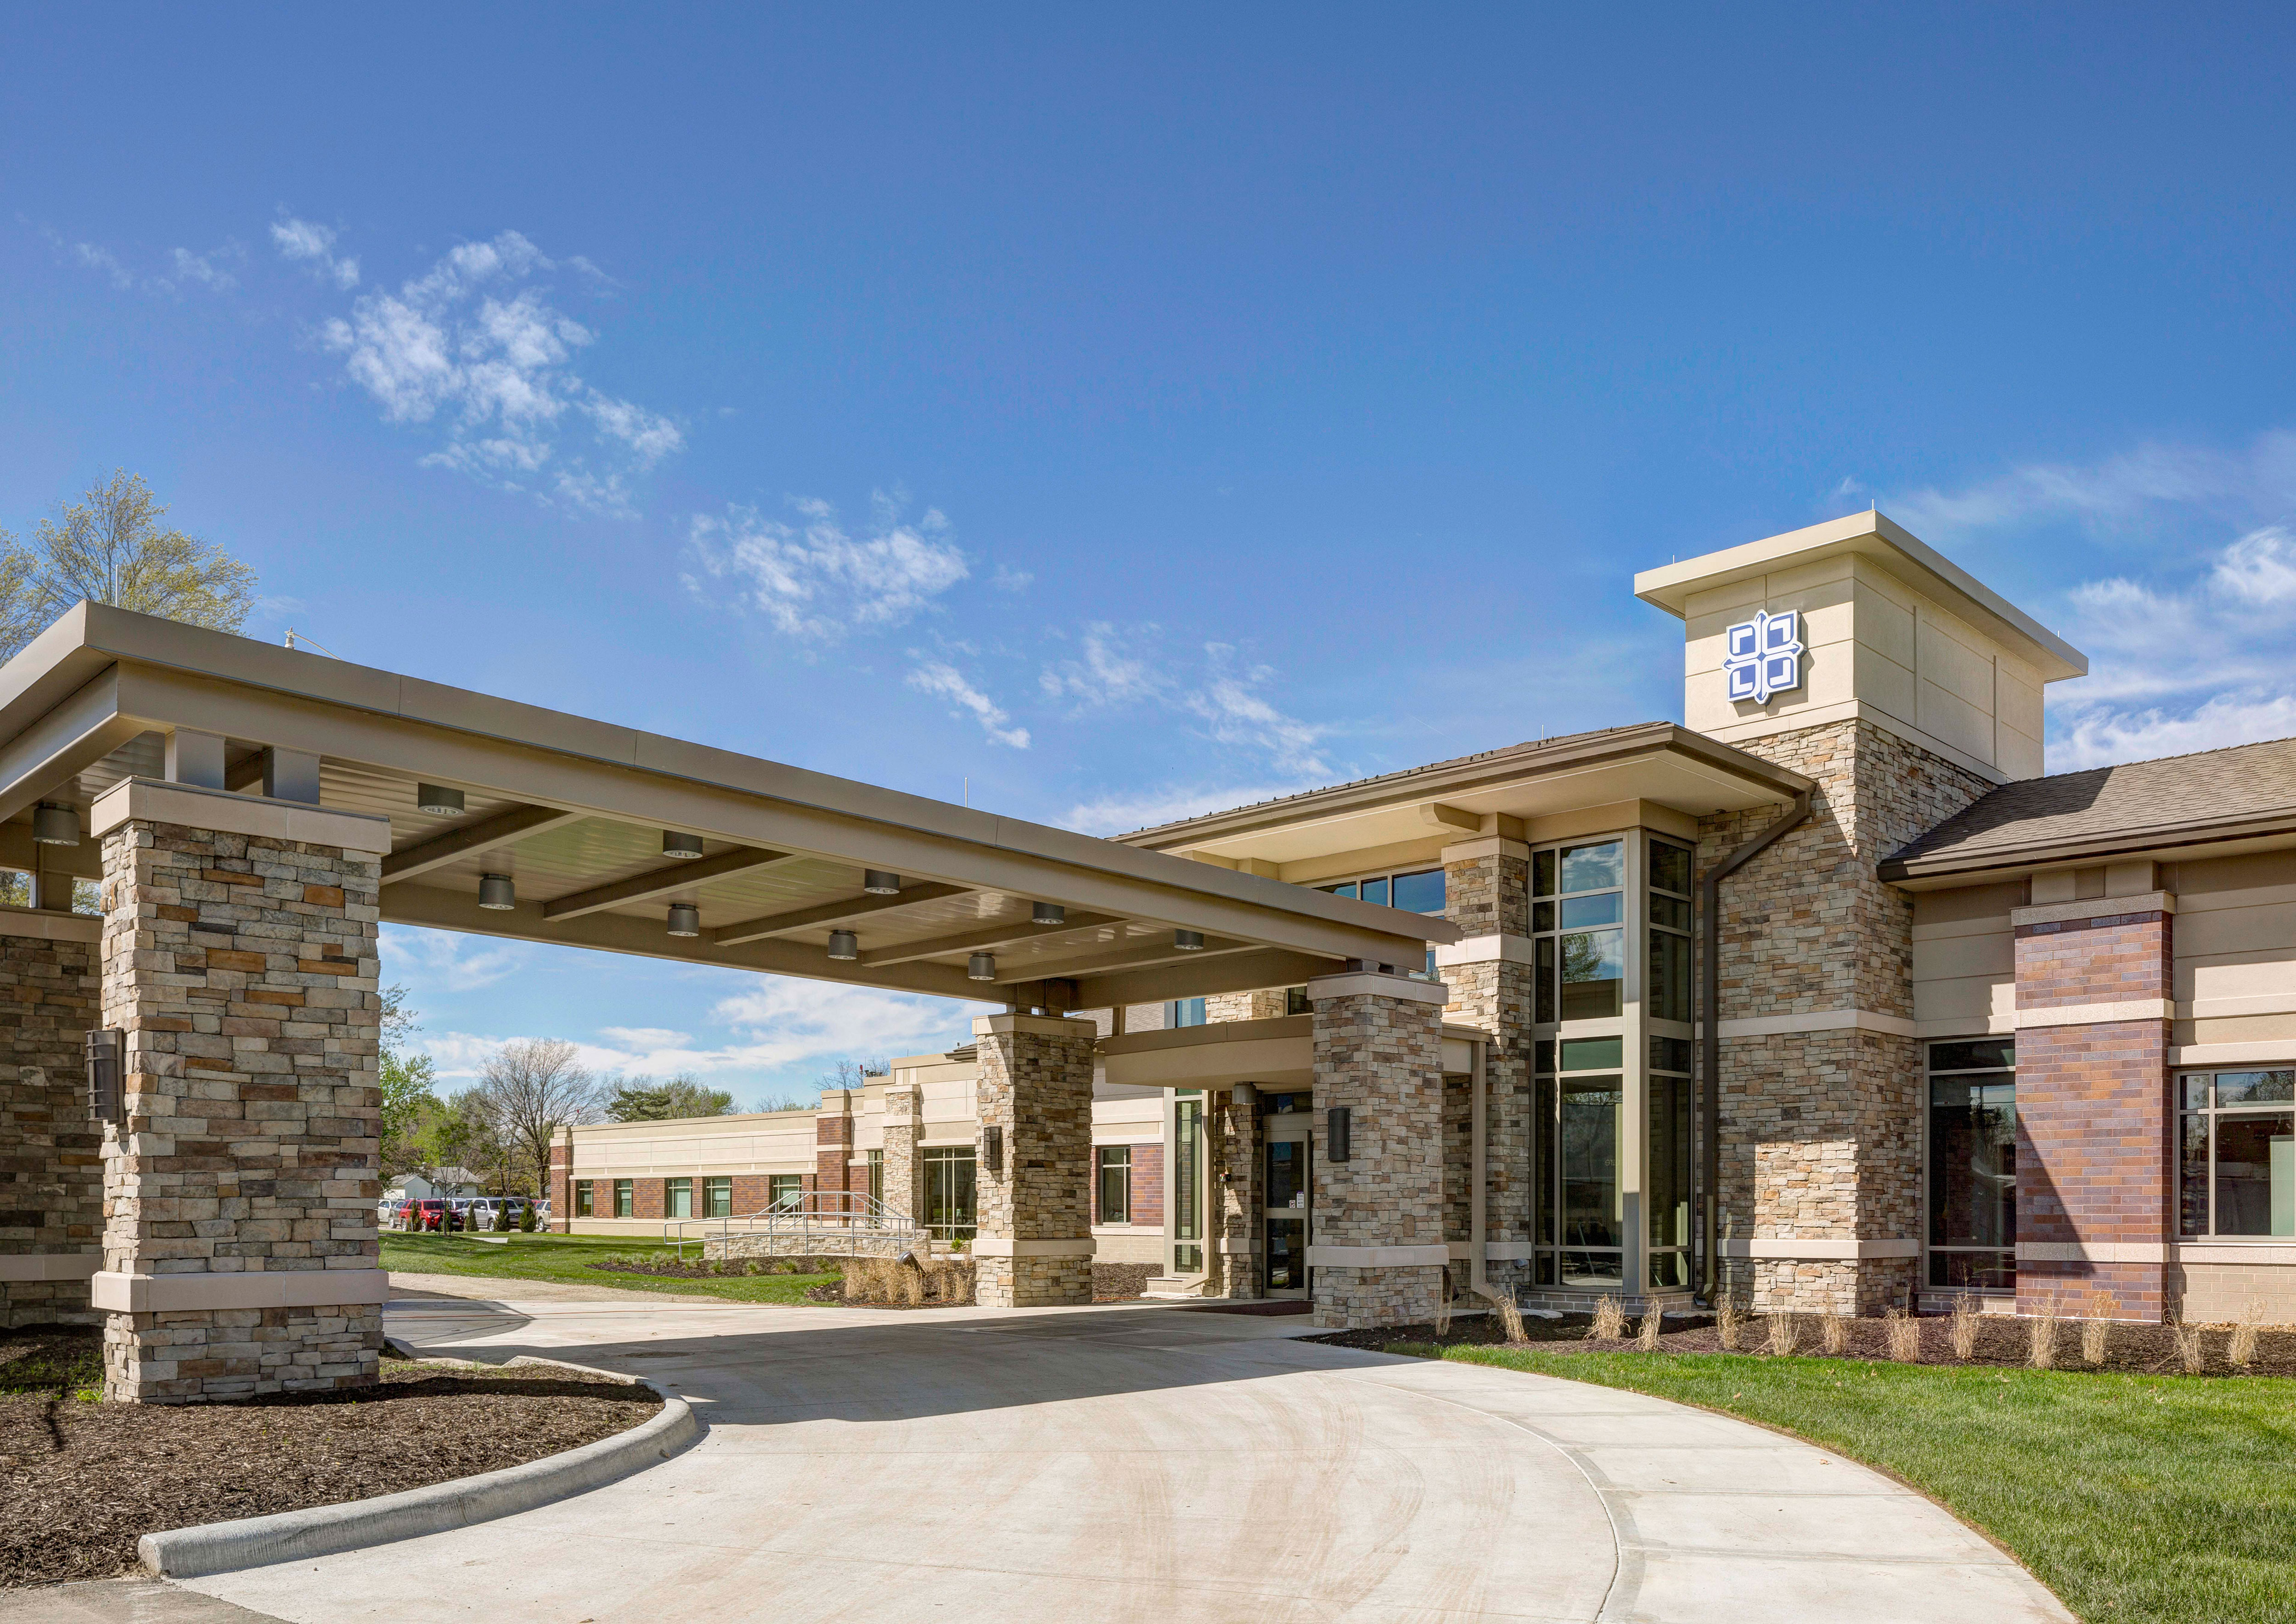 Anderson County Hospital Celebrates Moving into its New Facility